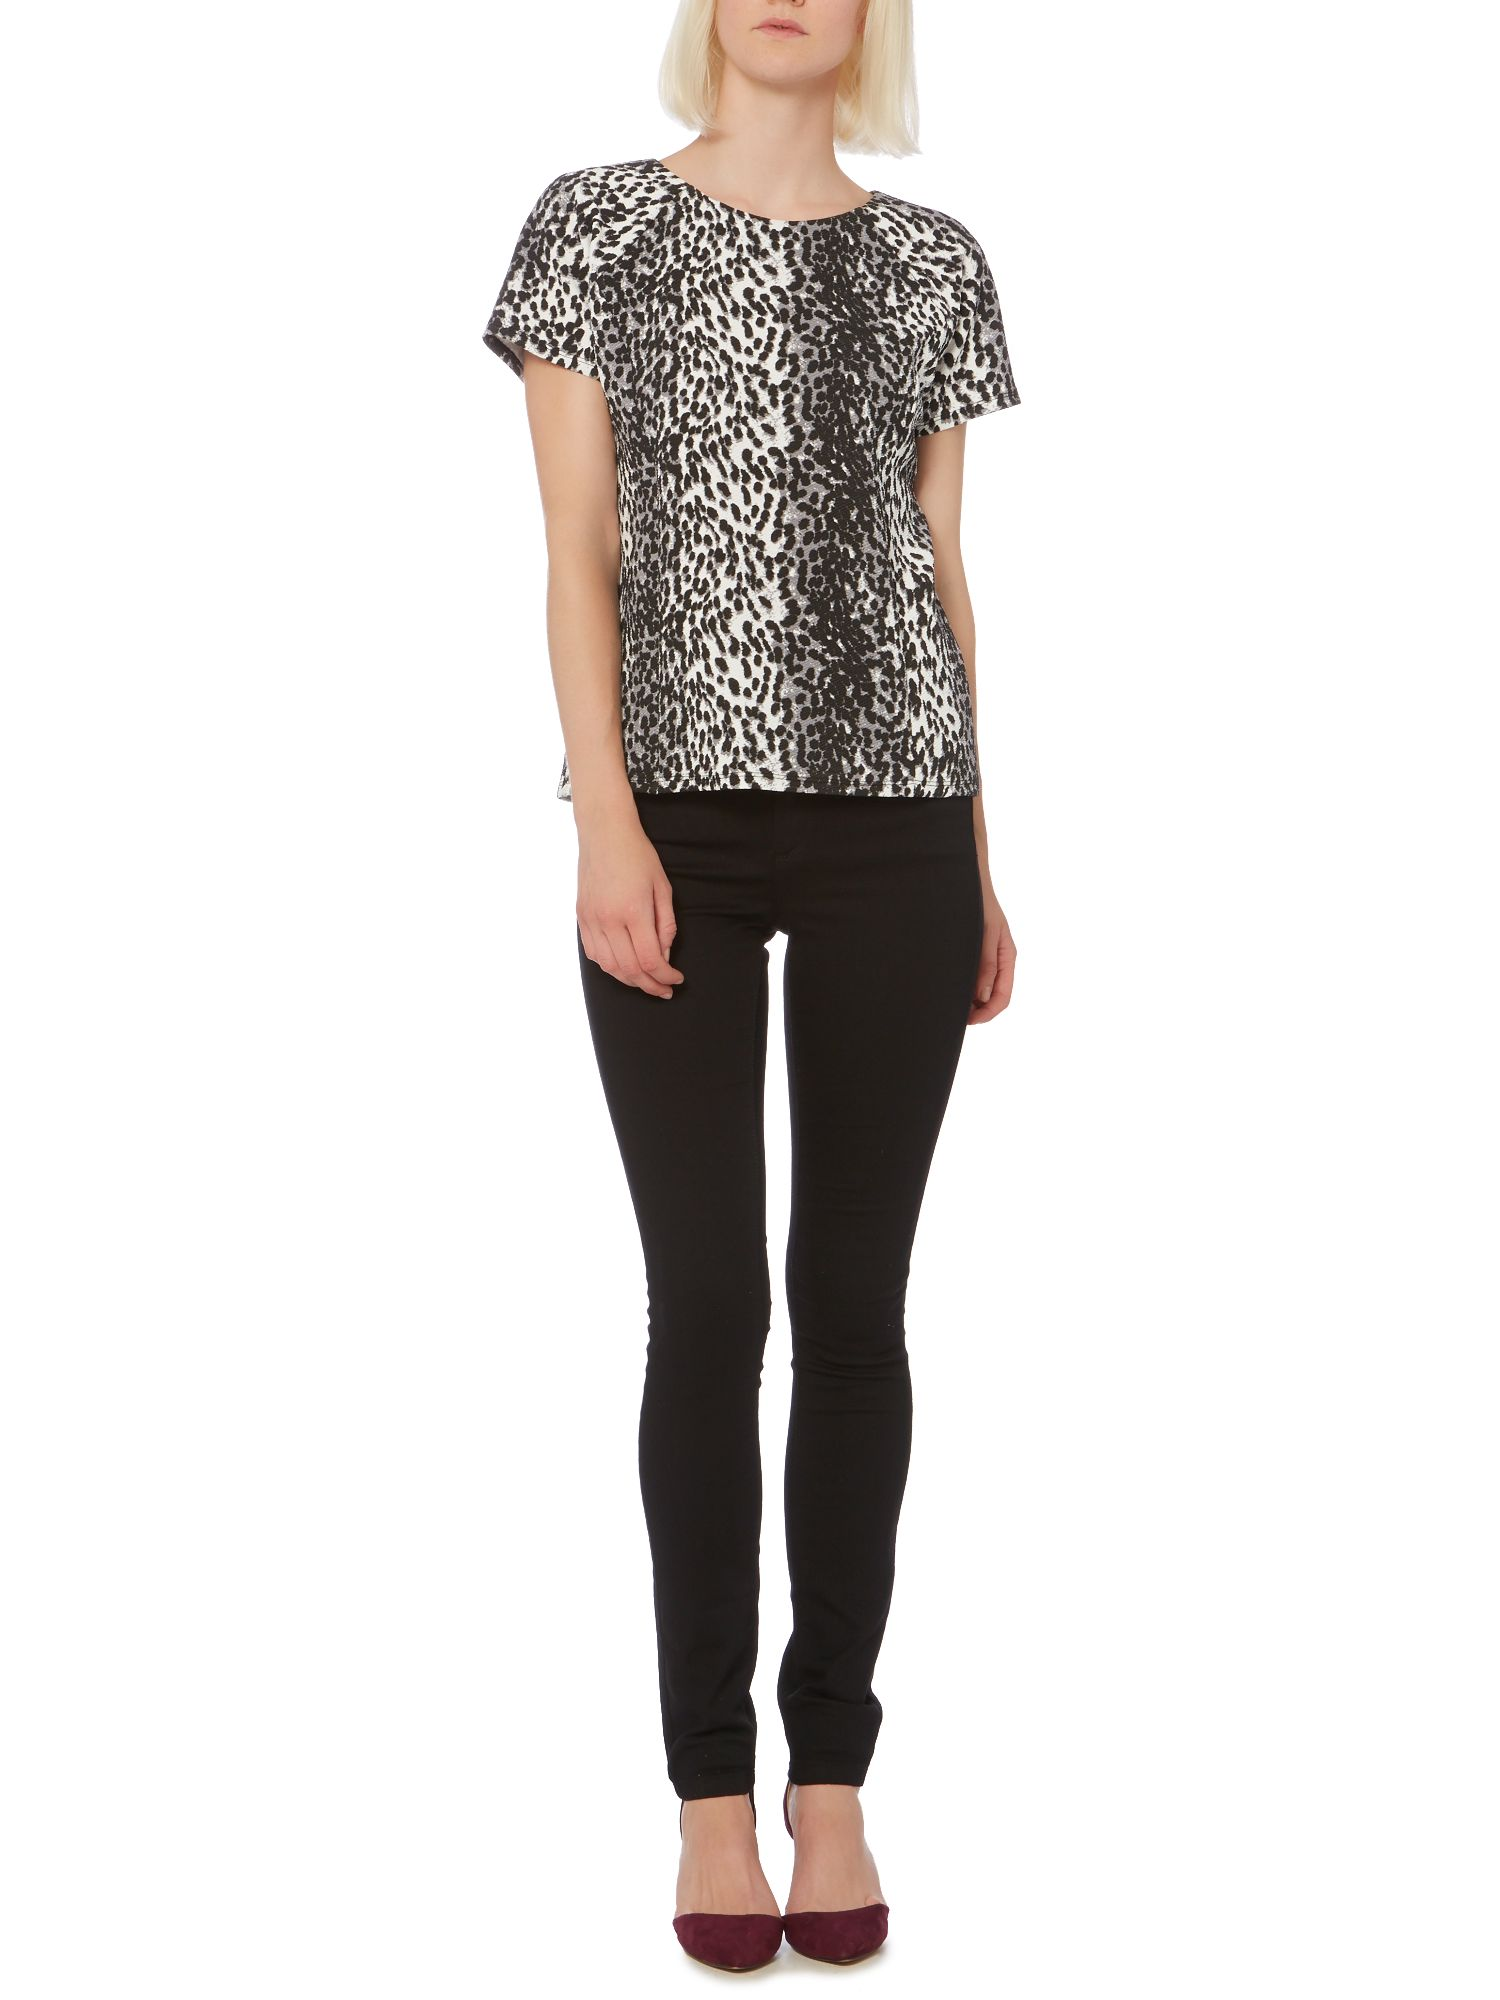 Animal print textured top